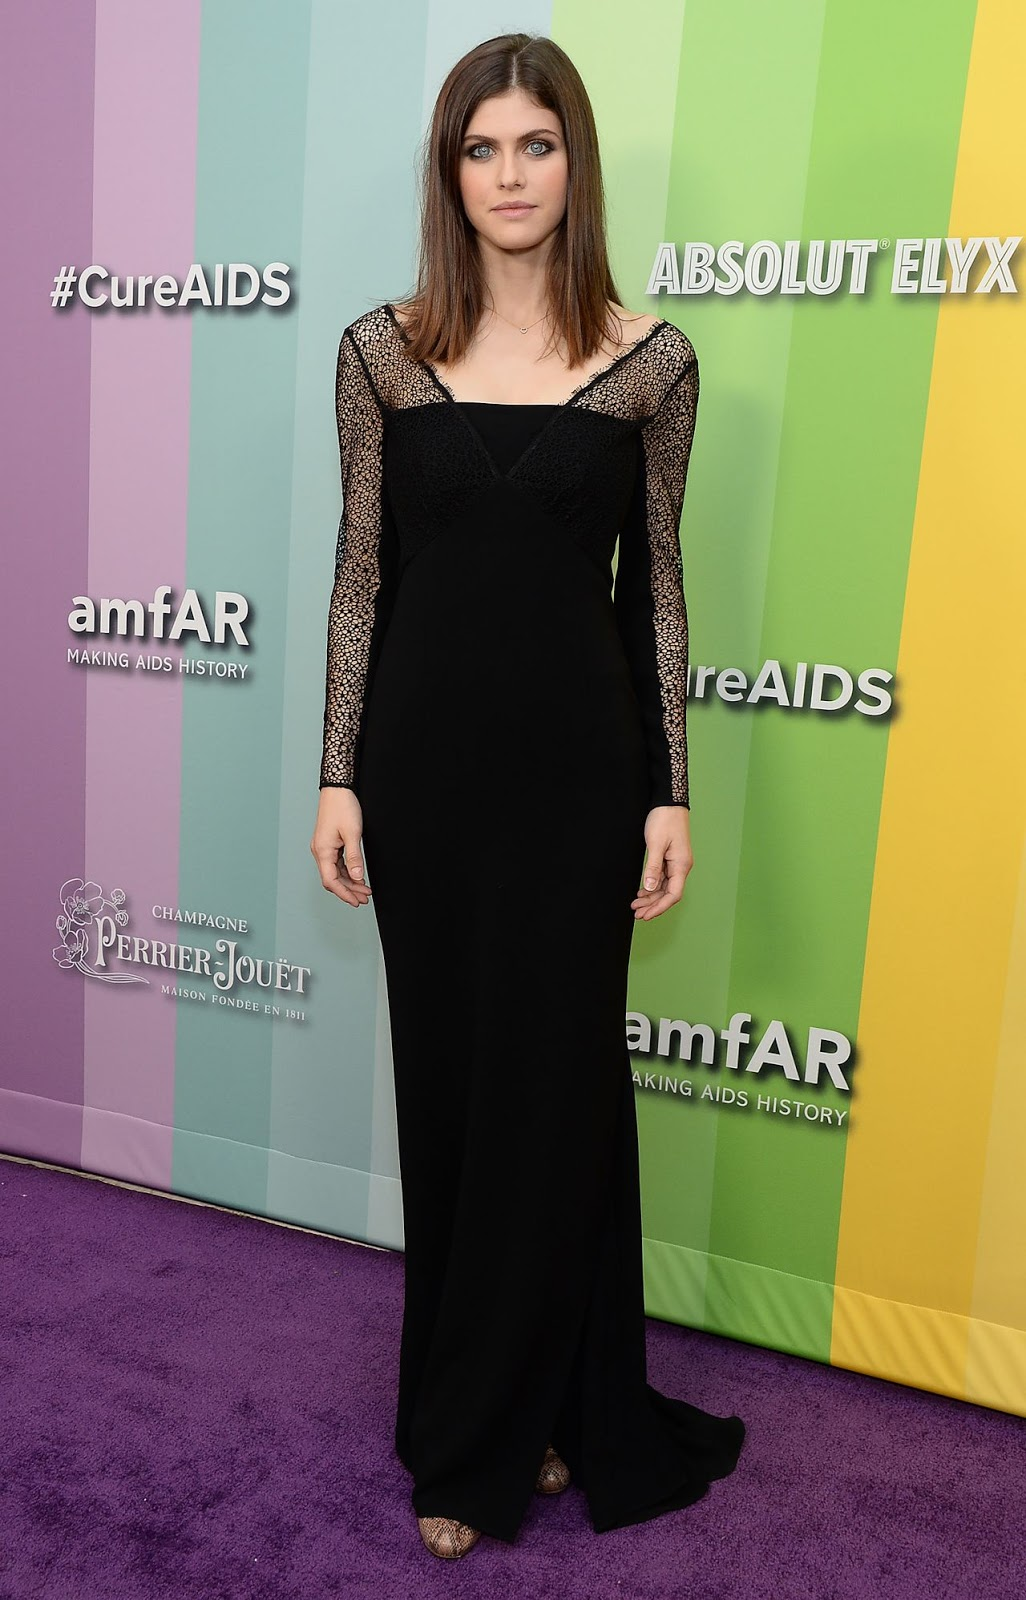 Alexandra Daddario is vampy chic in a black gown featuring webbed mesh sleeves at the 2019 amfAR Inspiration Gala